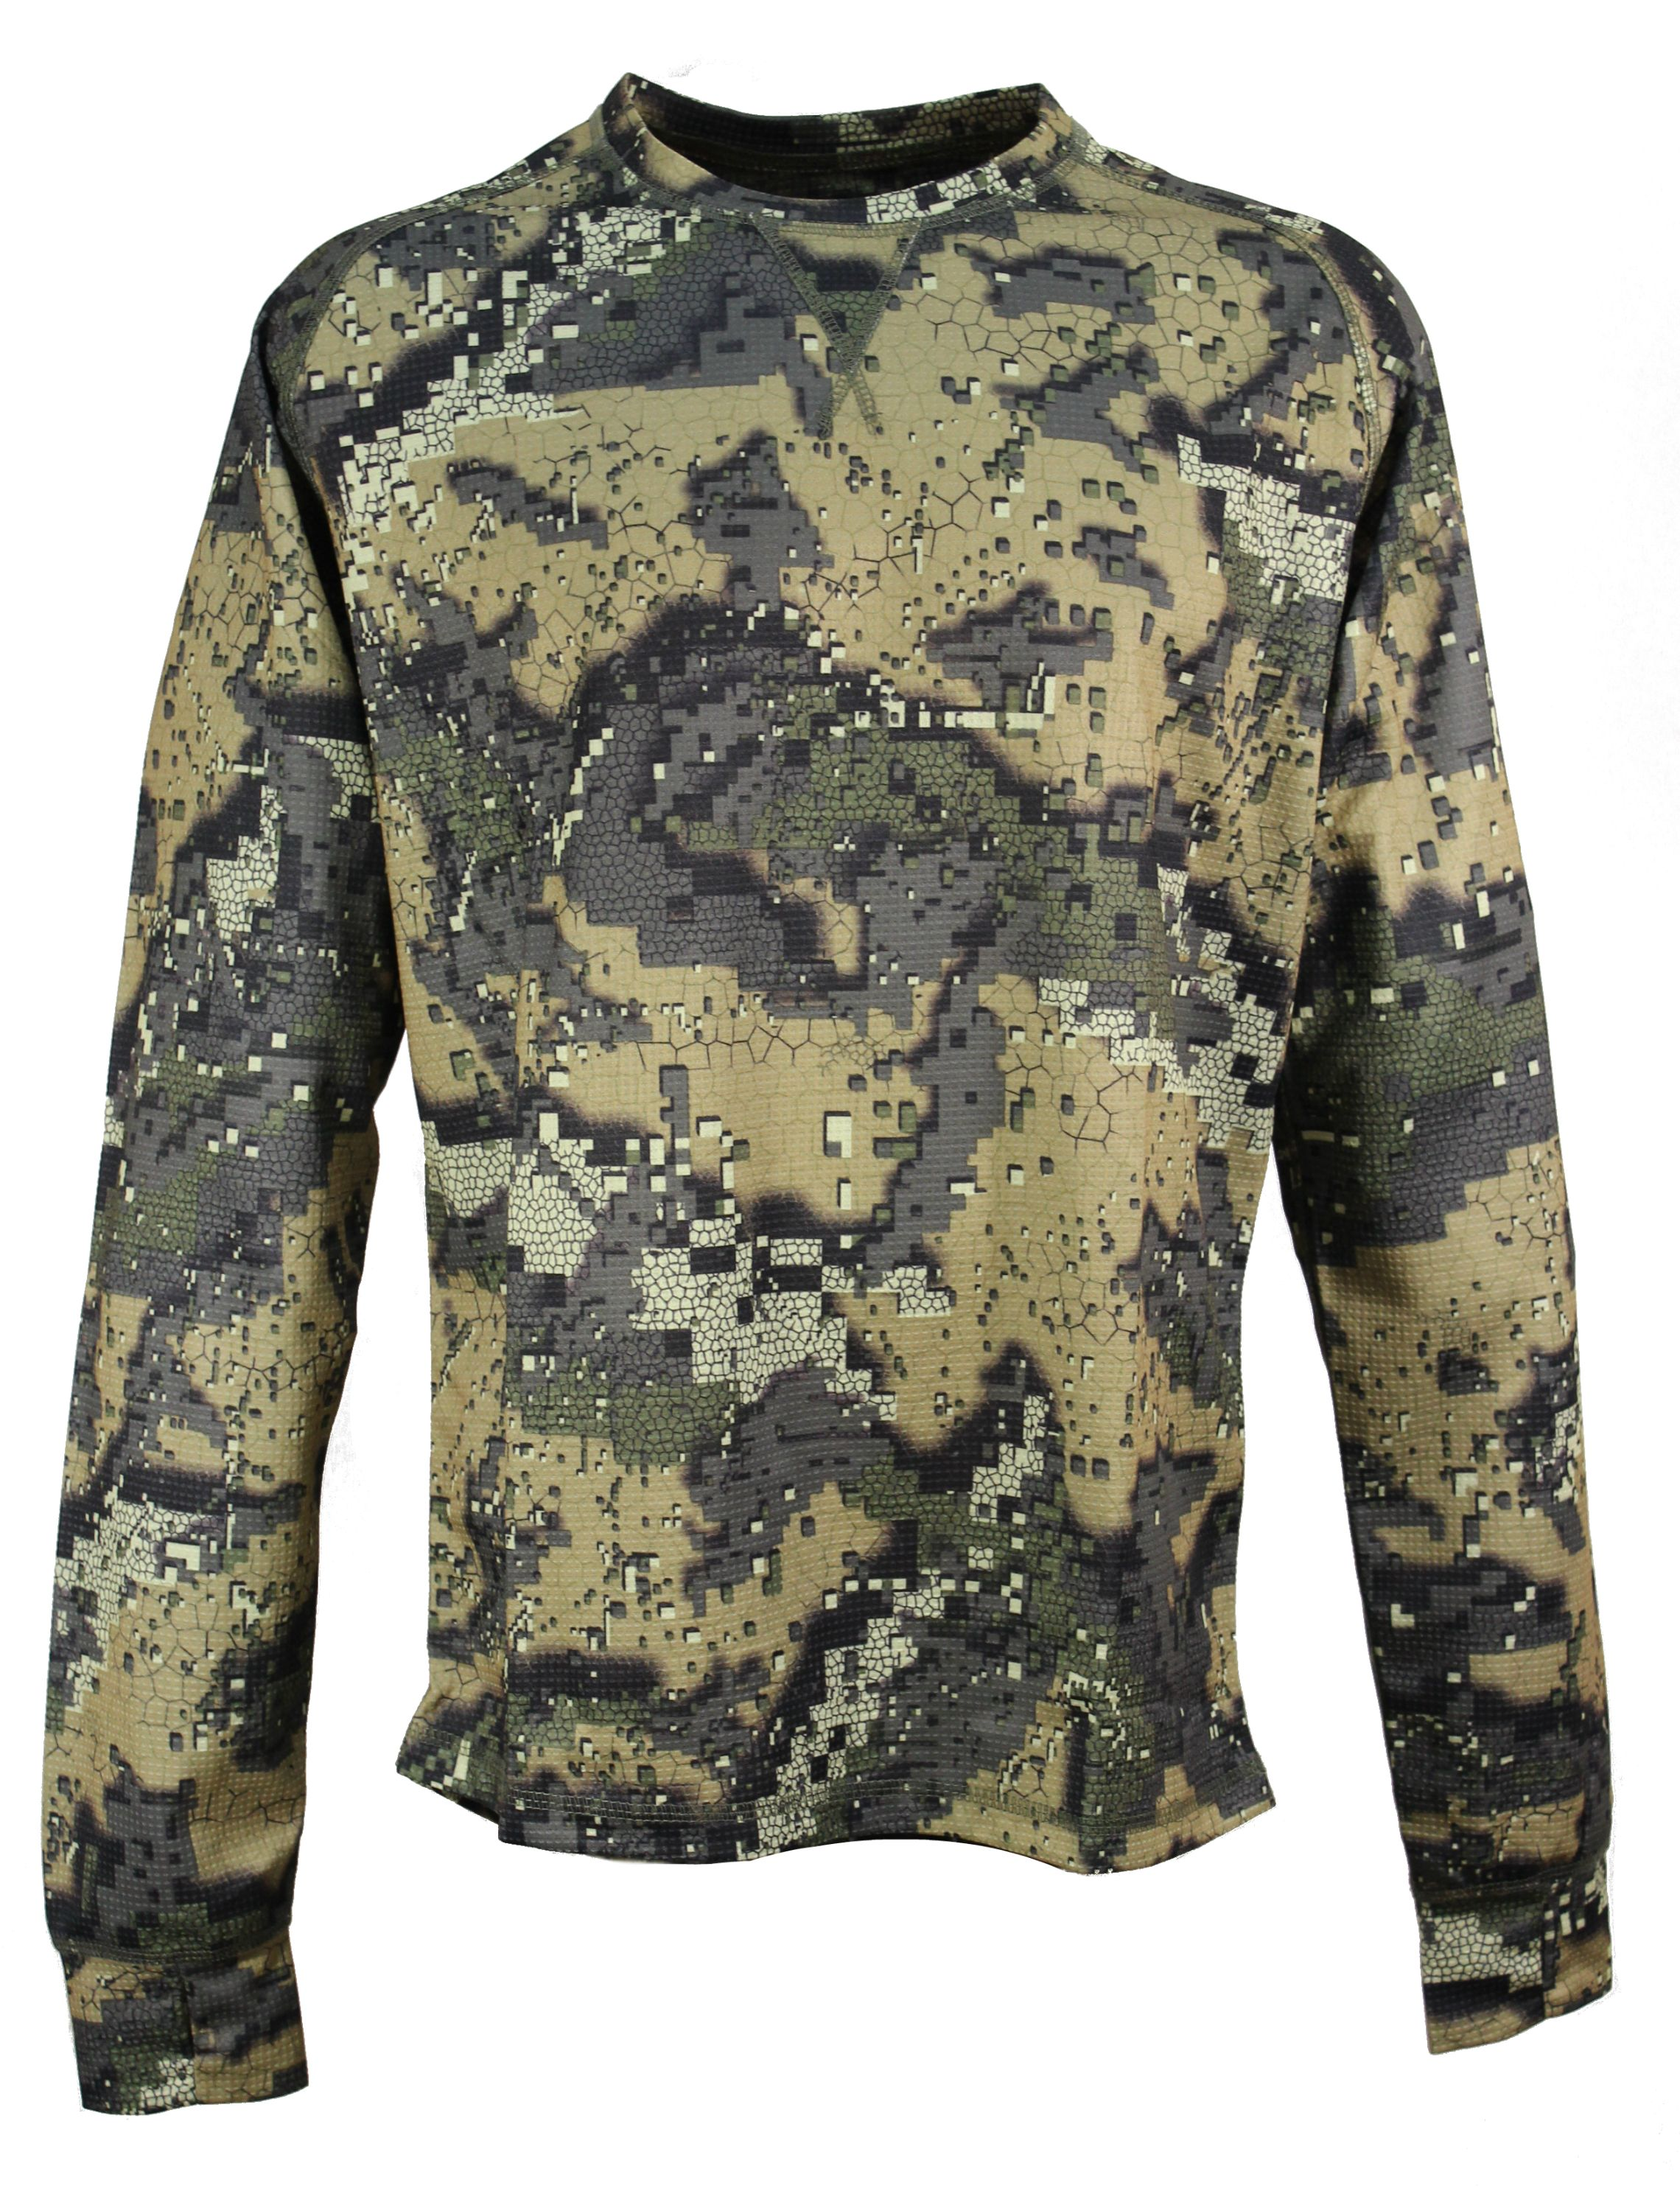 Джемпер охотничий Remington Men's Camouflage T-Shirt APG Hunting Camo, цвет Optifade, р.S